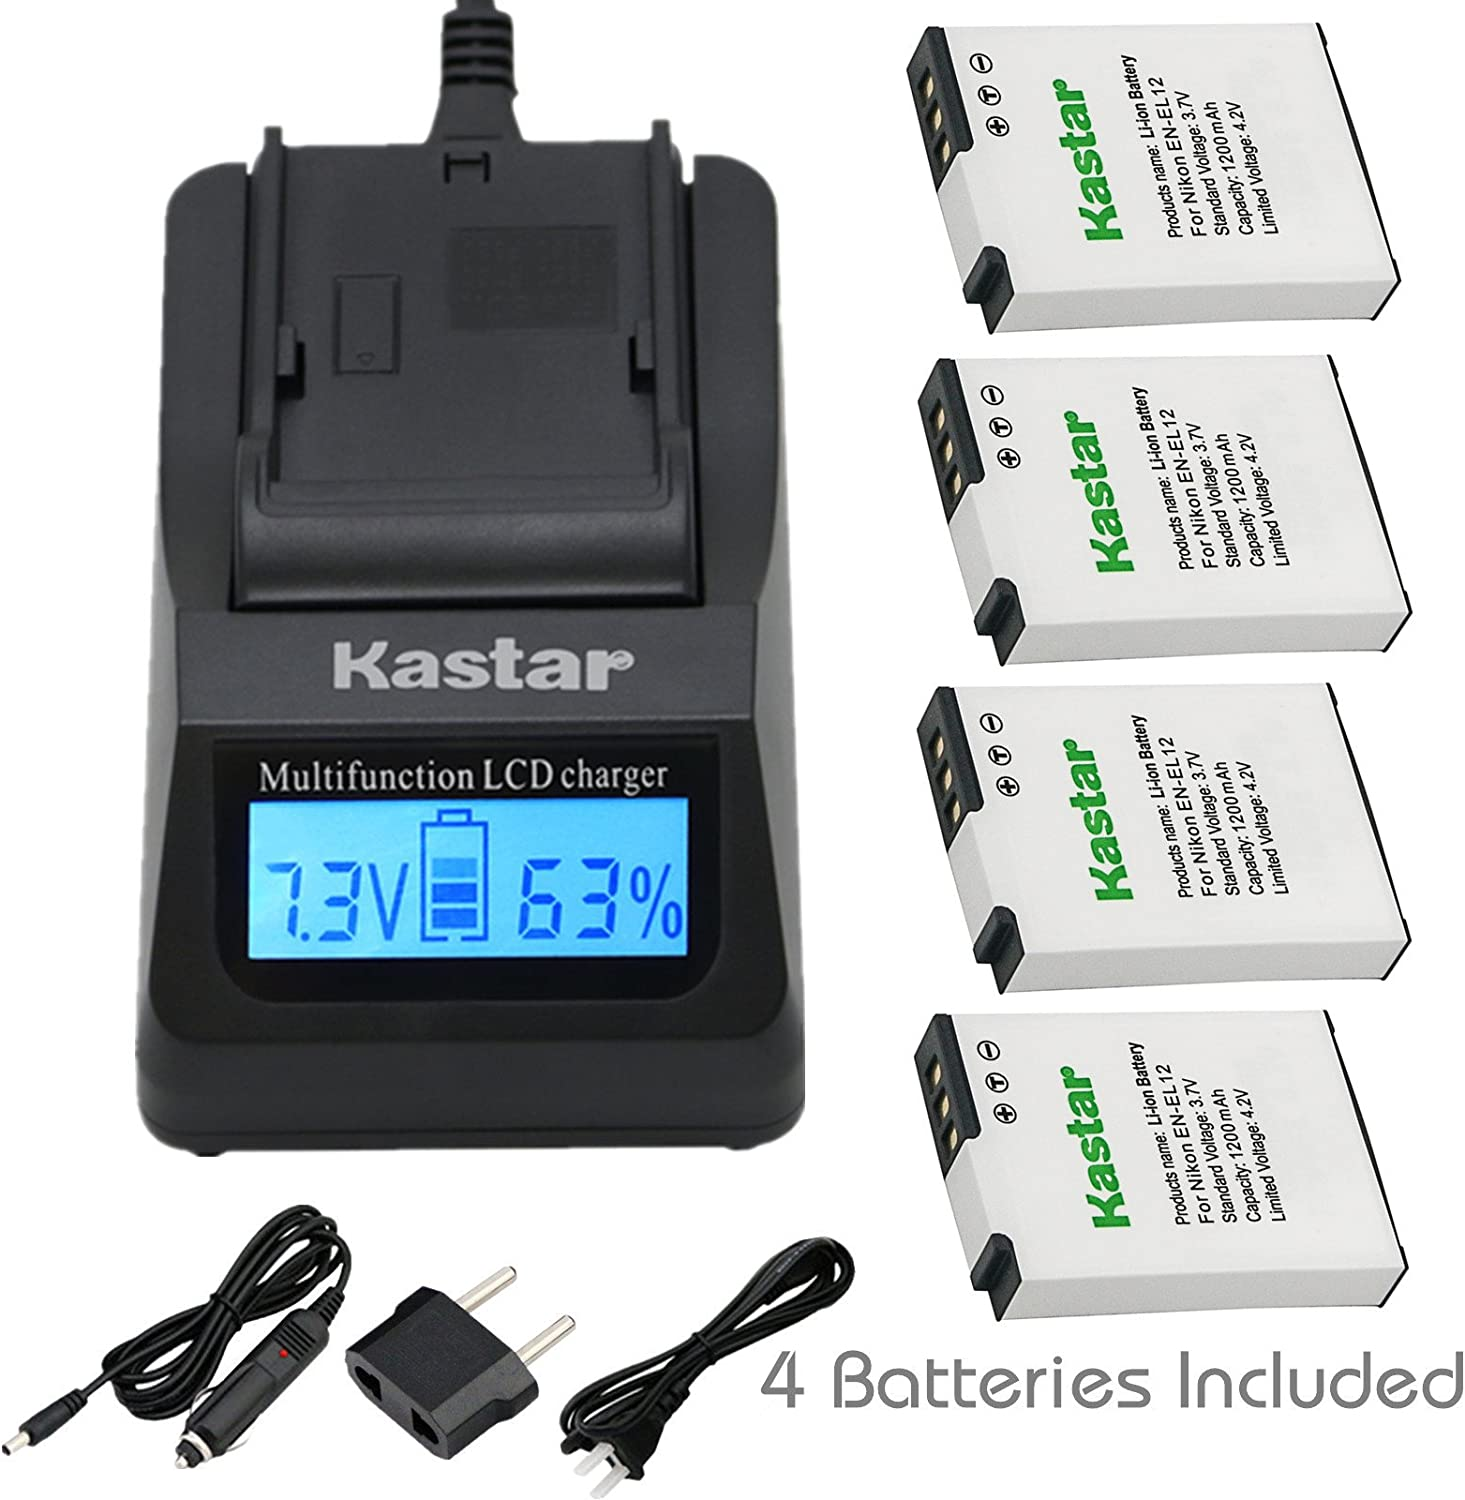 Kastar Ultra Fast Charger(3X faster) Kit and Battery (4-Pack) for Nikon EN-EL12 MH-65 work with Nikon Coolpix AW100, AW100s, AW110, AW110s, AW120, AW120s, P300, P310, P330, P340, S31, S70, S610, S620, S630, S640, S800c, S1000pj, S1100pj, S1200pj, S6000, S